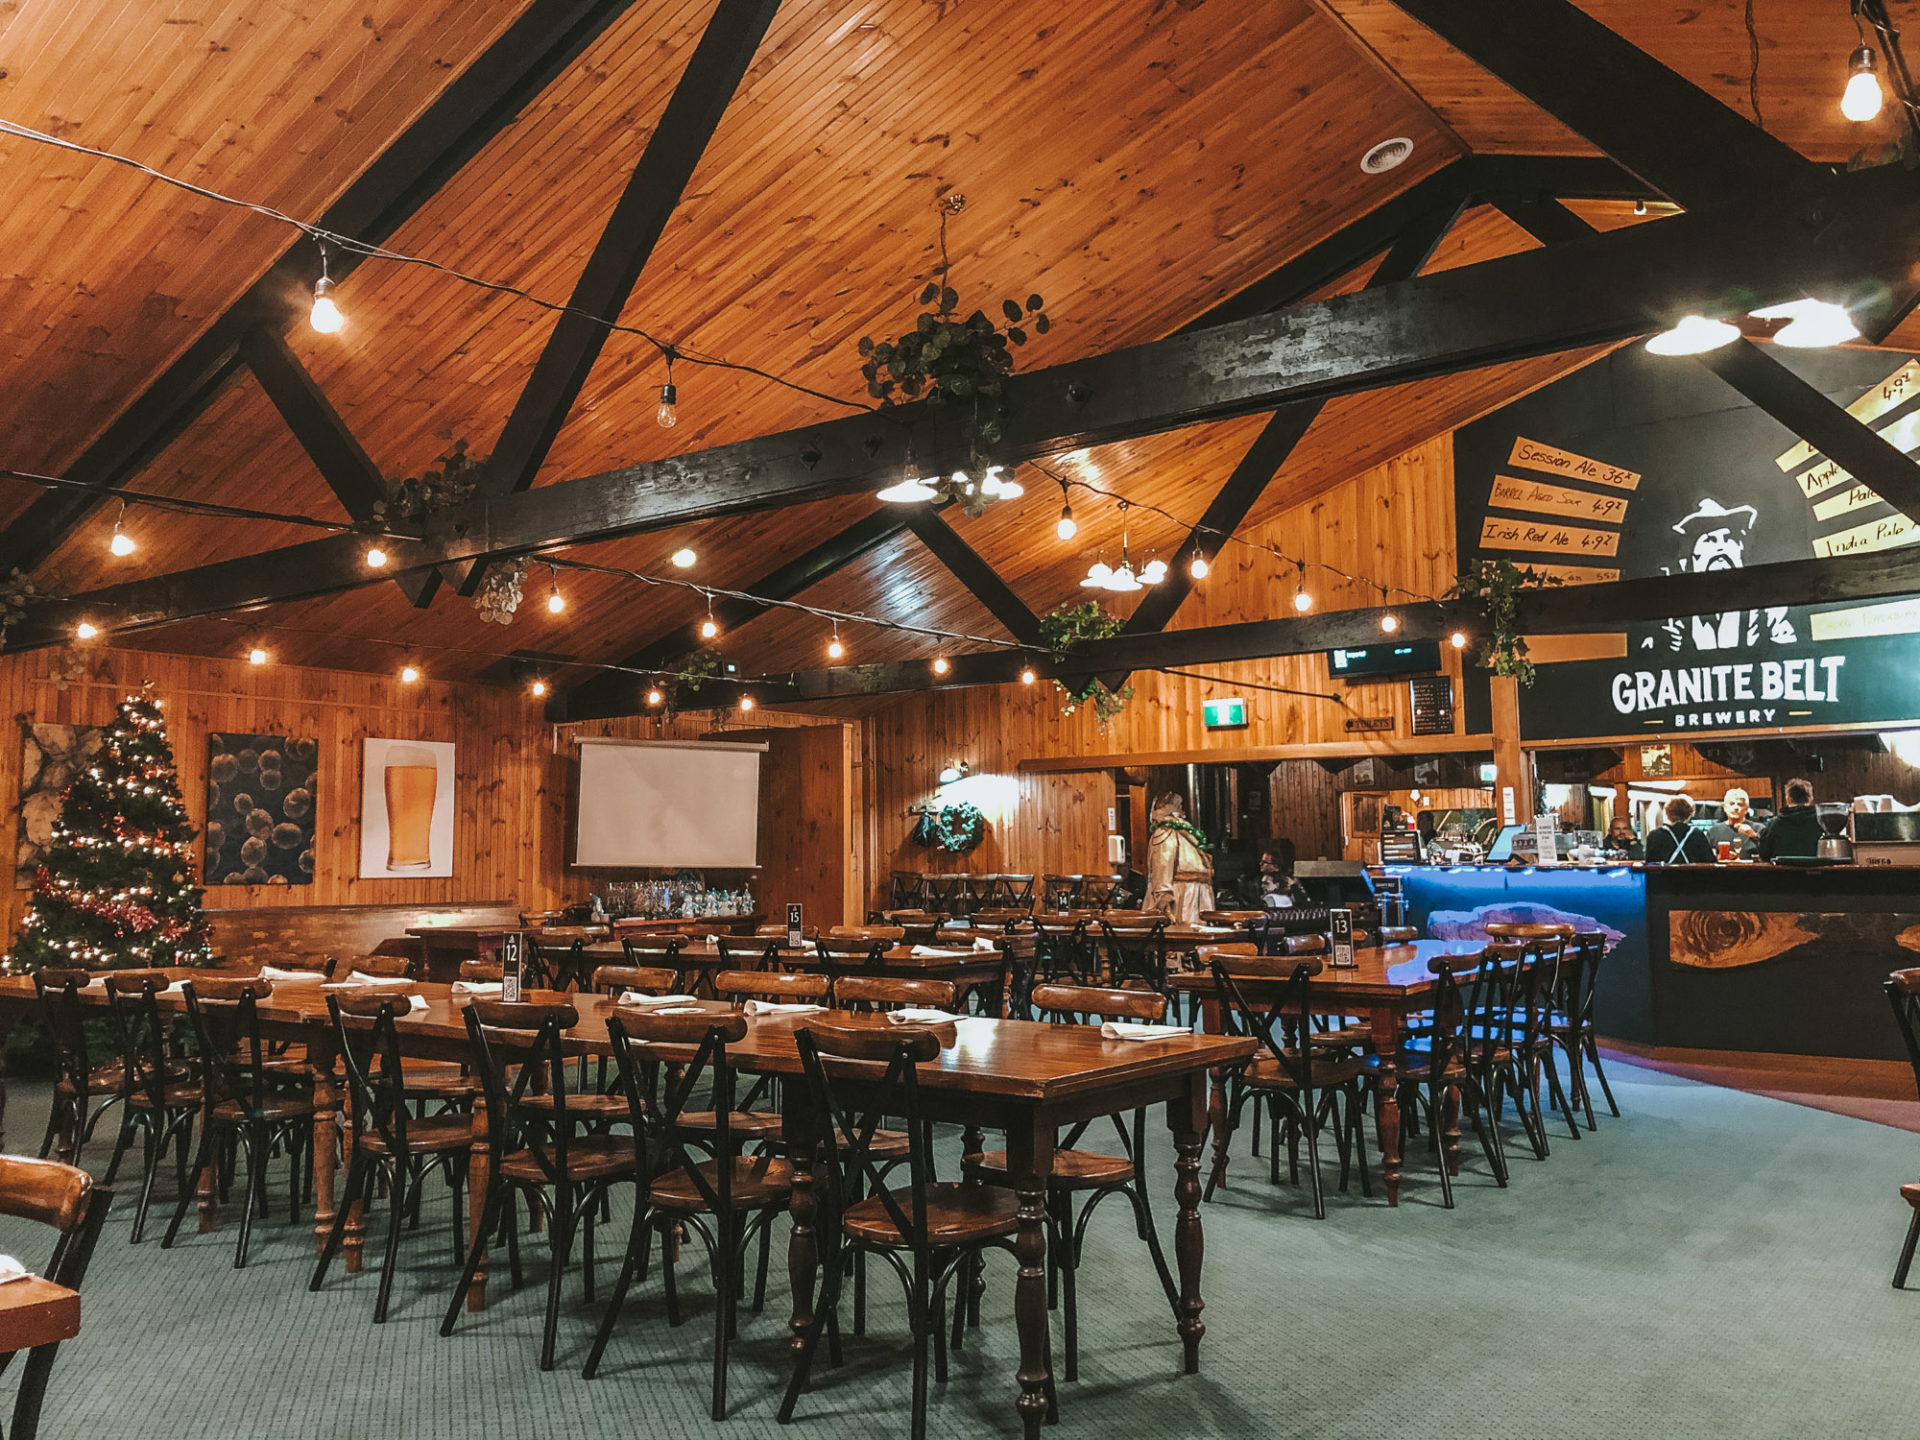 Granite Belt Brewery, things to do in Stanthorpe